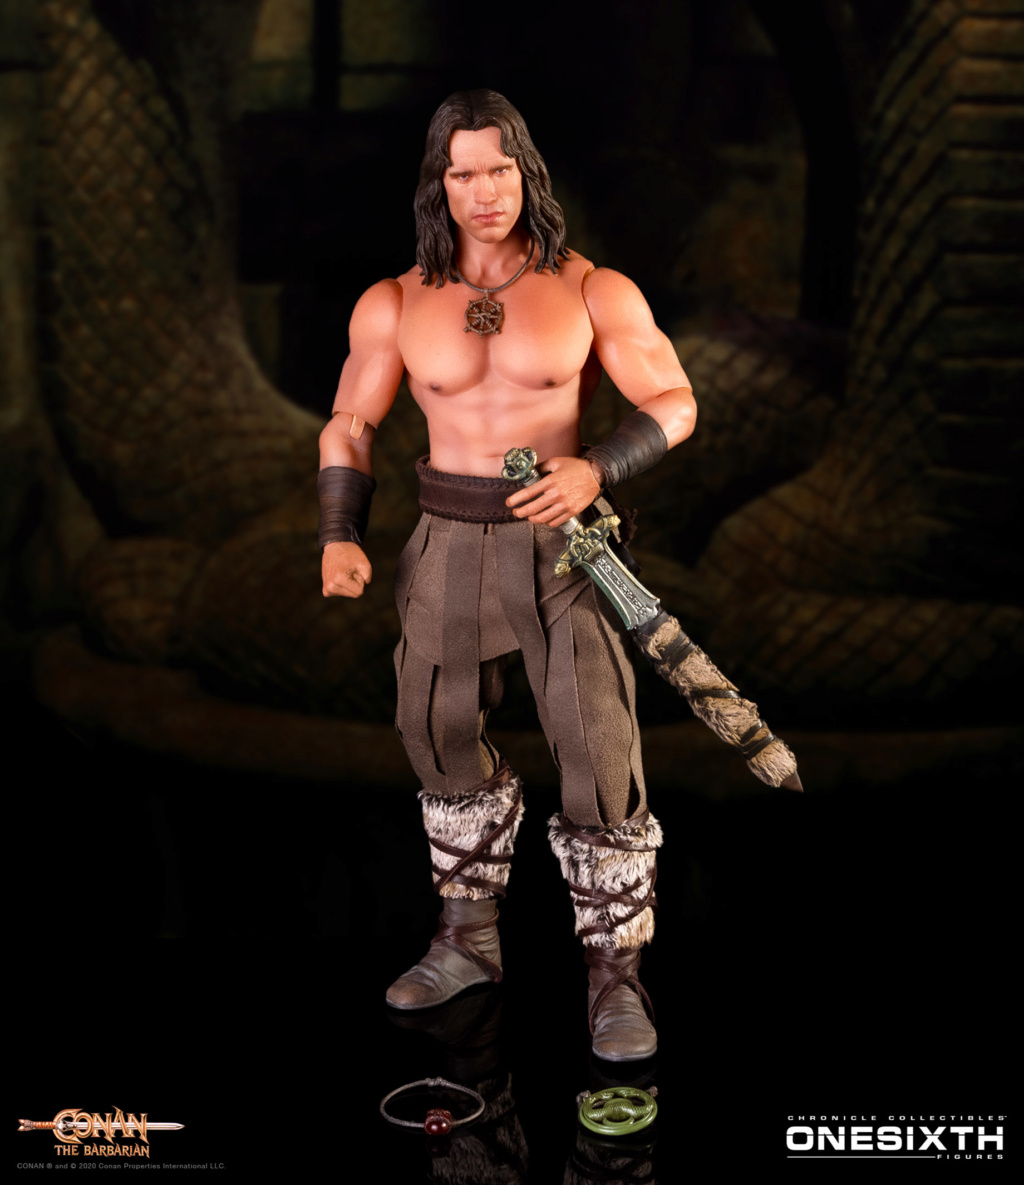 NEW PRODUCT: Chronicle Collectibles: OneSixth Conan the Barbarian Figure Chroni25